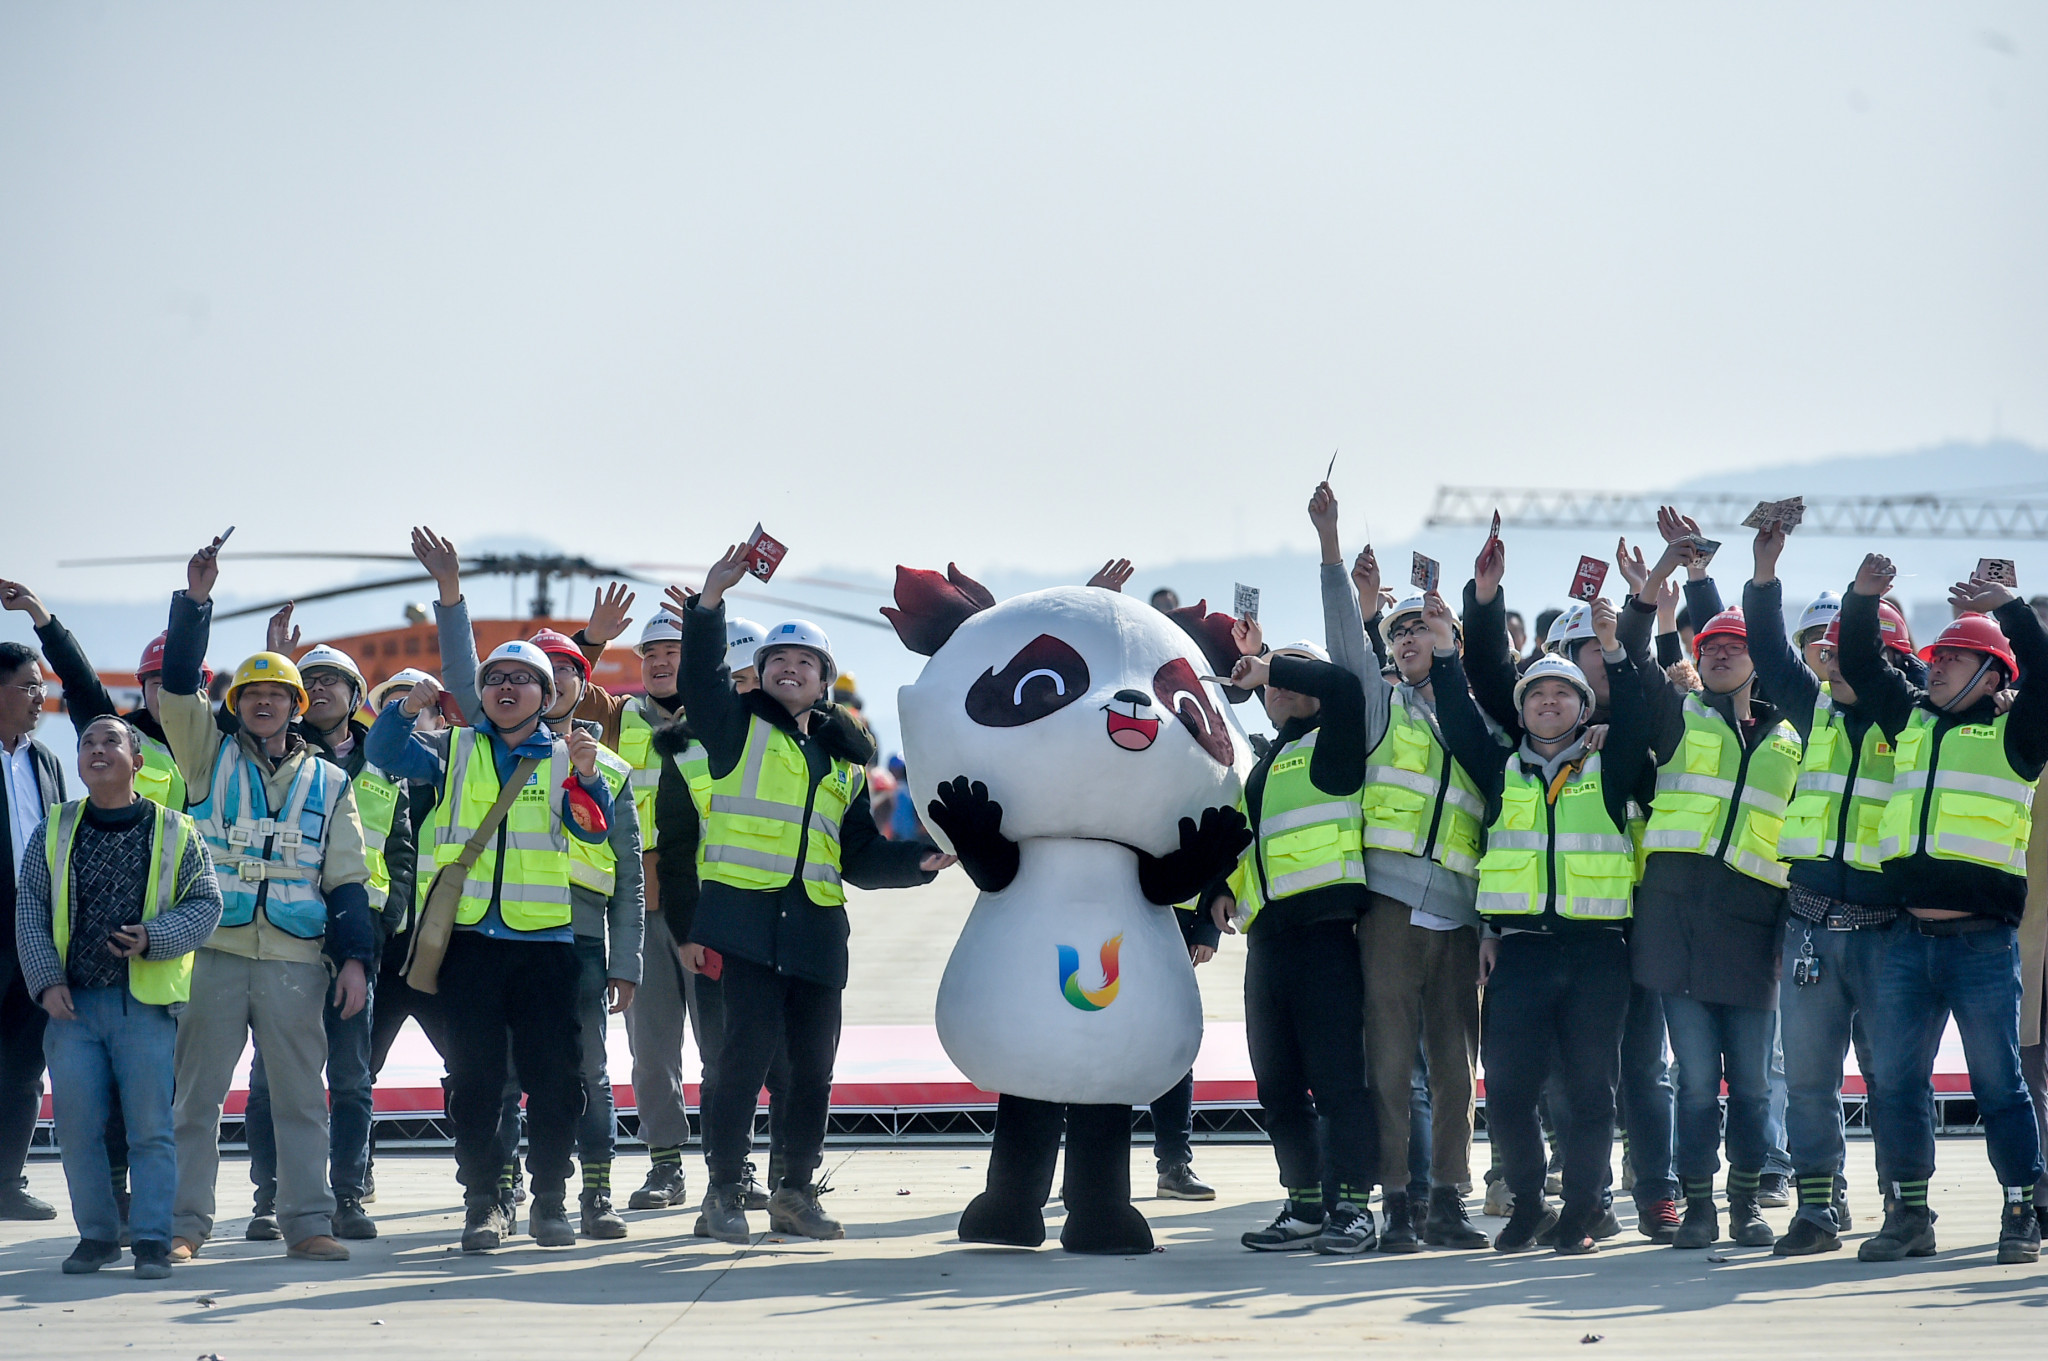 Rongbao gave the construction workers special Chengdu 2021 lottery tickets ©Chengdu 2021